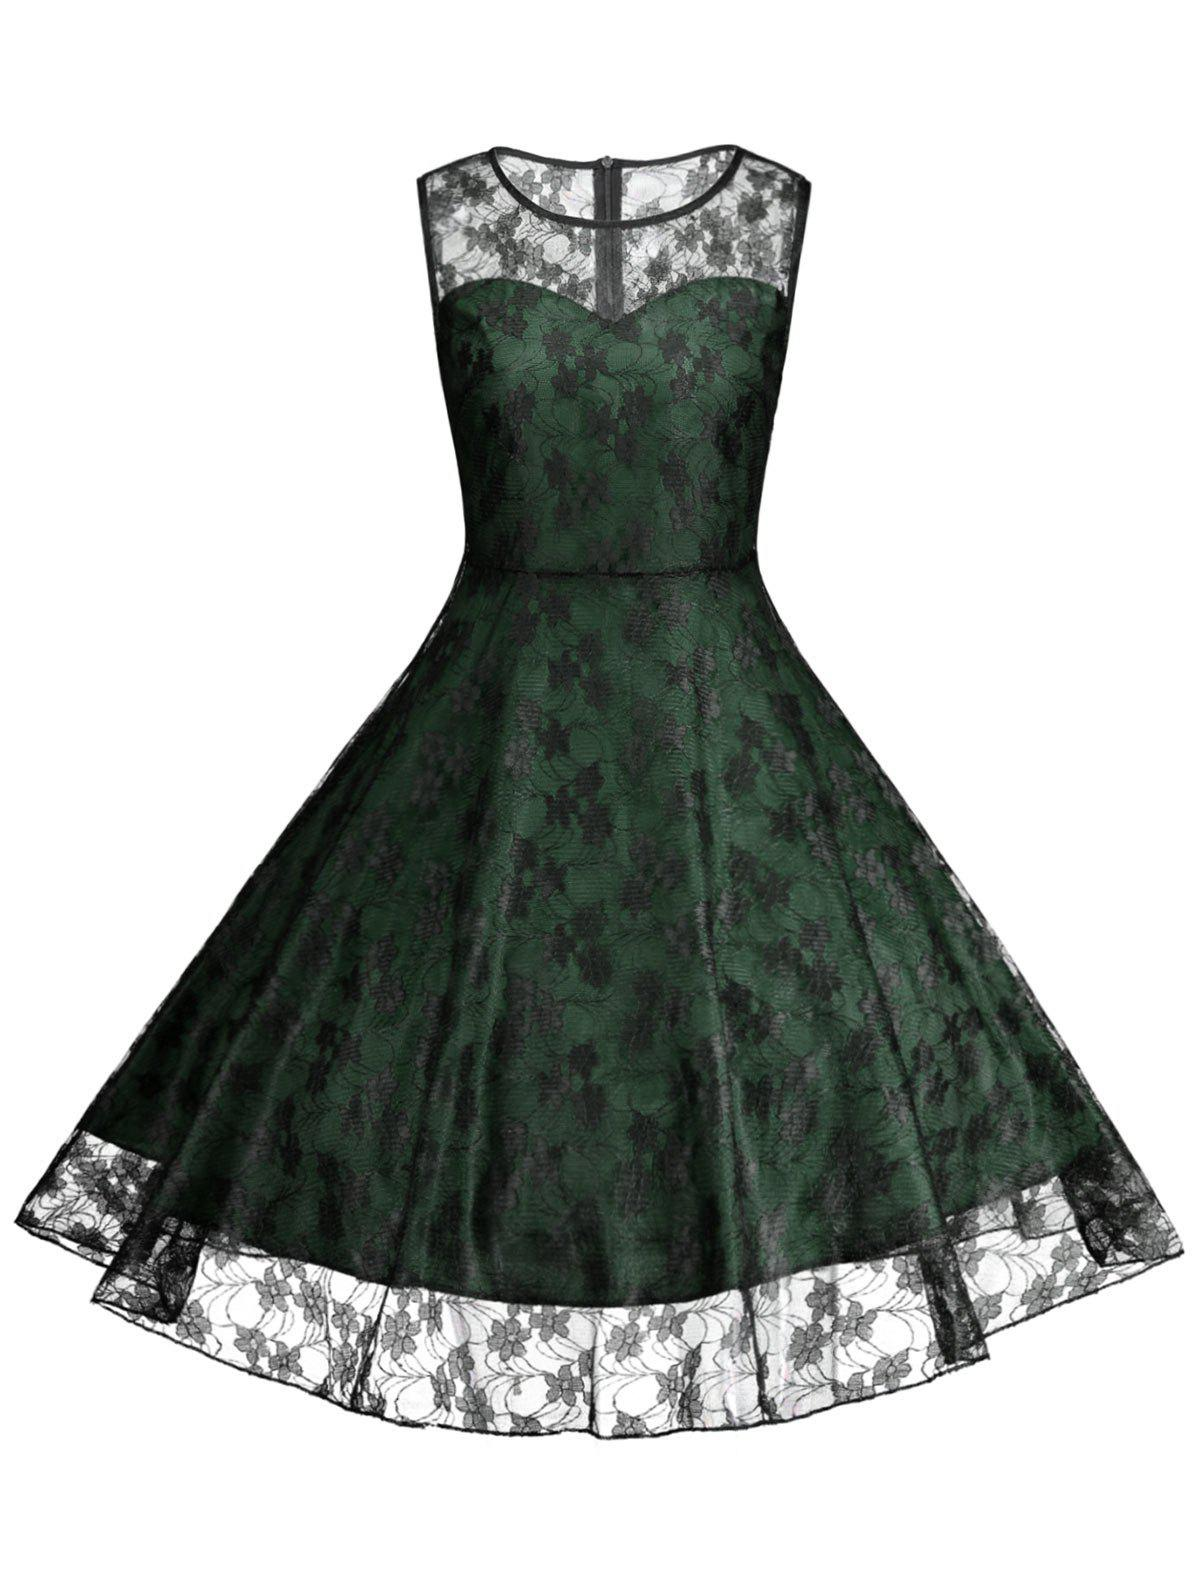 Plus Size Lace Cocktail Formal Party DressWOMEN<br><br>Size: XL; Color: GREEN; Style: Vintage; Material: Lace,Polyester; Silhouette: A-Line; Dresses Length: Knee-Length; Neckline: Round Collar; Sleeve Length: Sleeveless; Waist: High Waisted; Embellishment: Lace; Pattern Type: Floral; With Belt: No; Season: Summer; Weight: 0.2400kg; Package Contents: 1 x Dress;